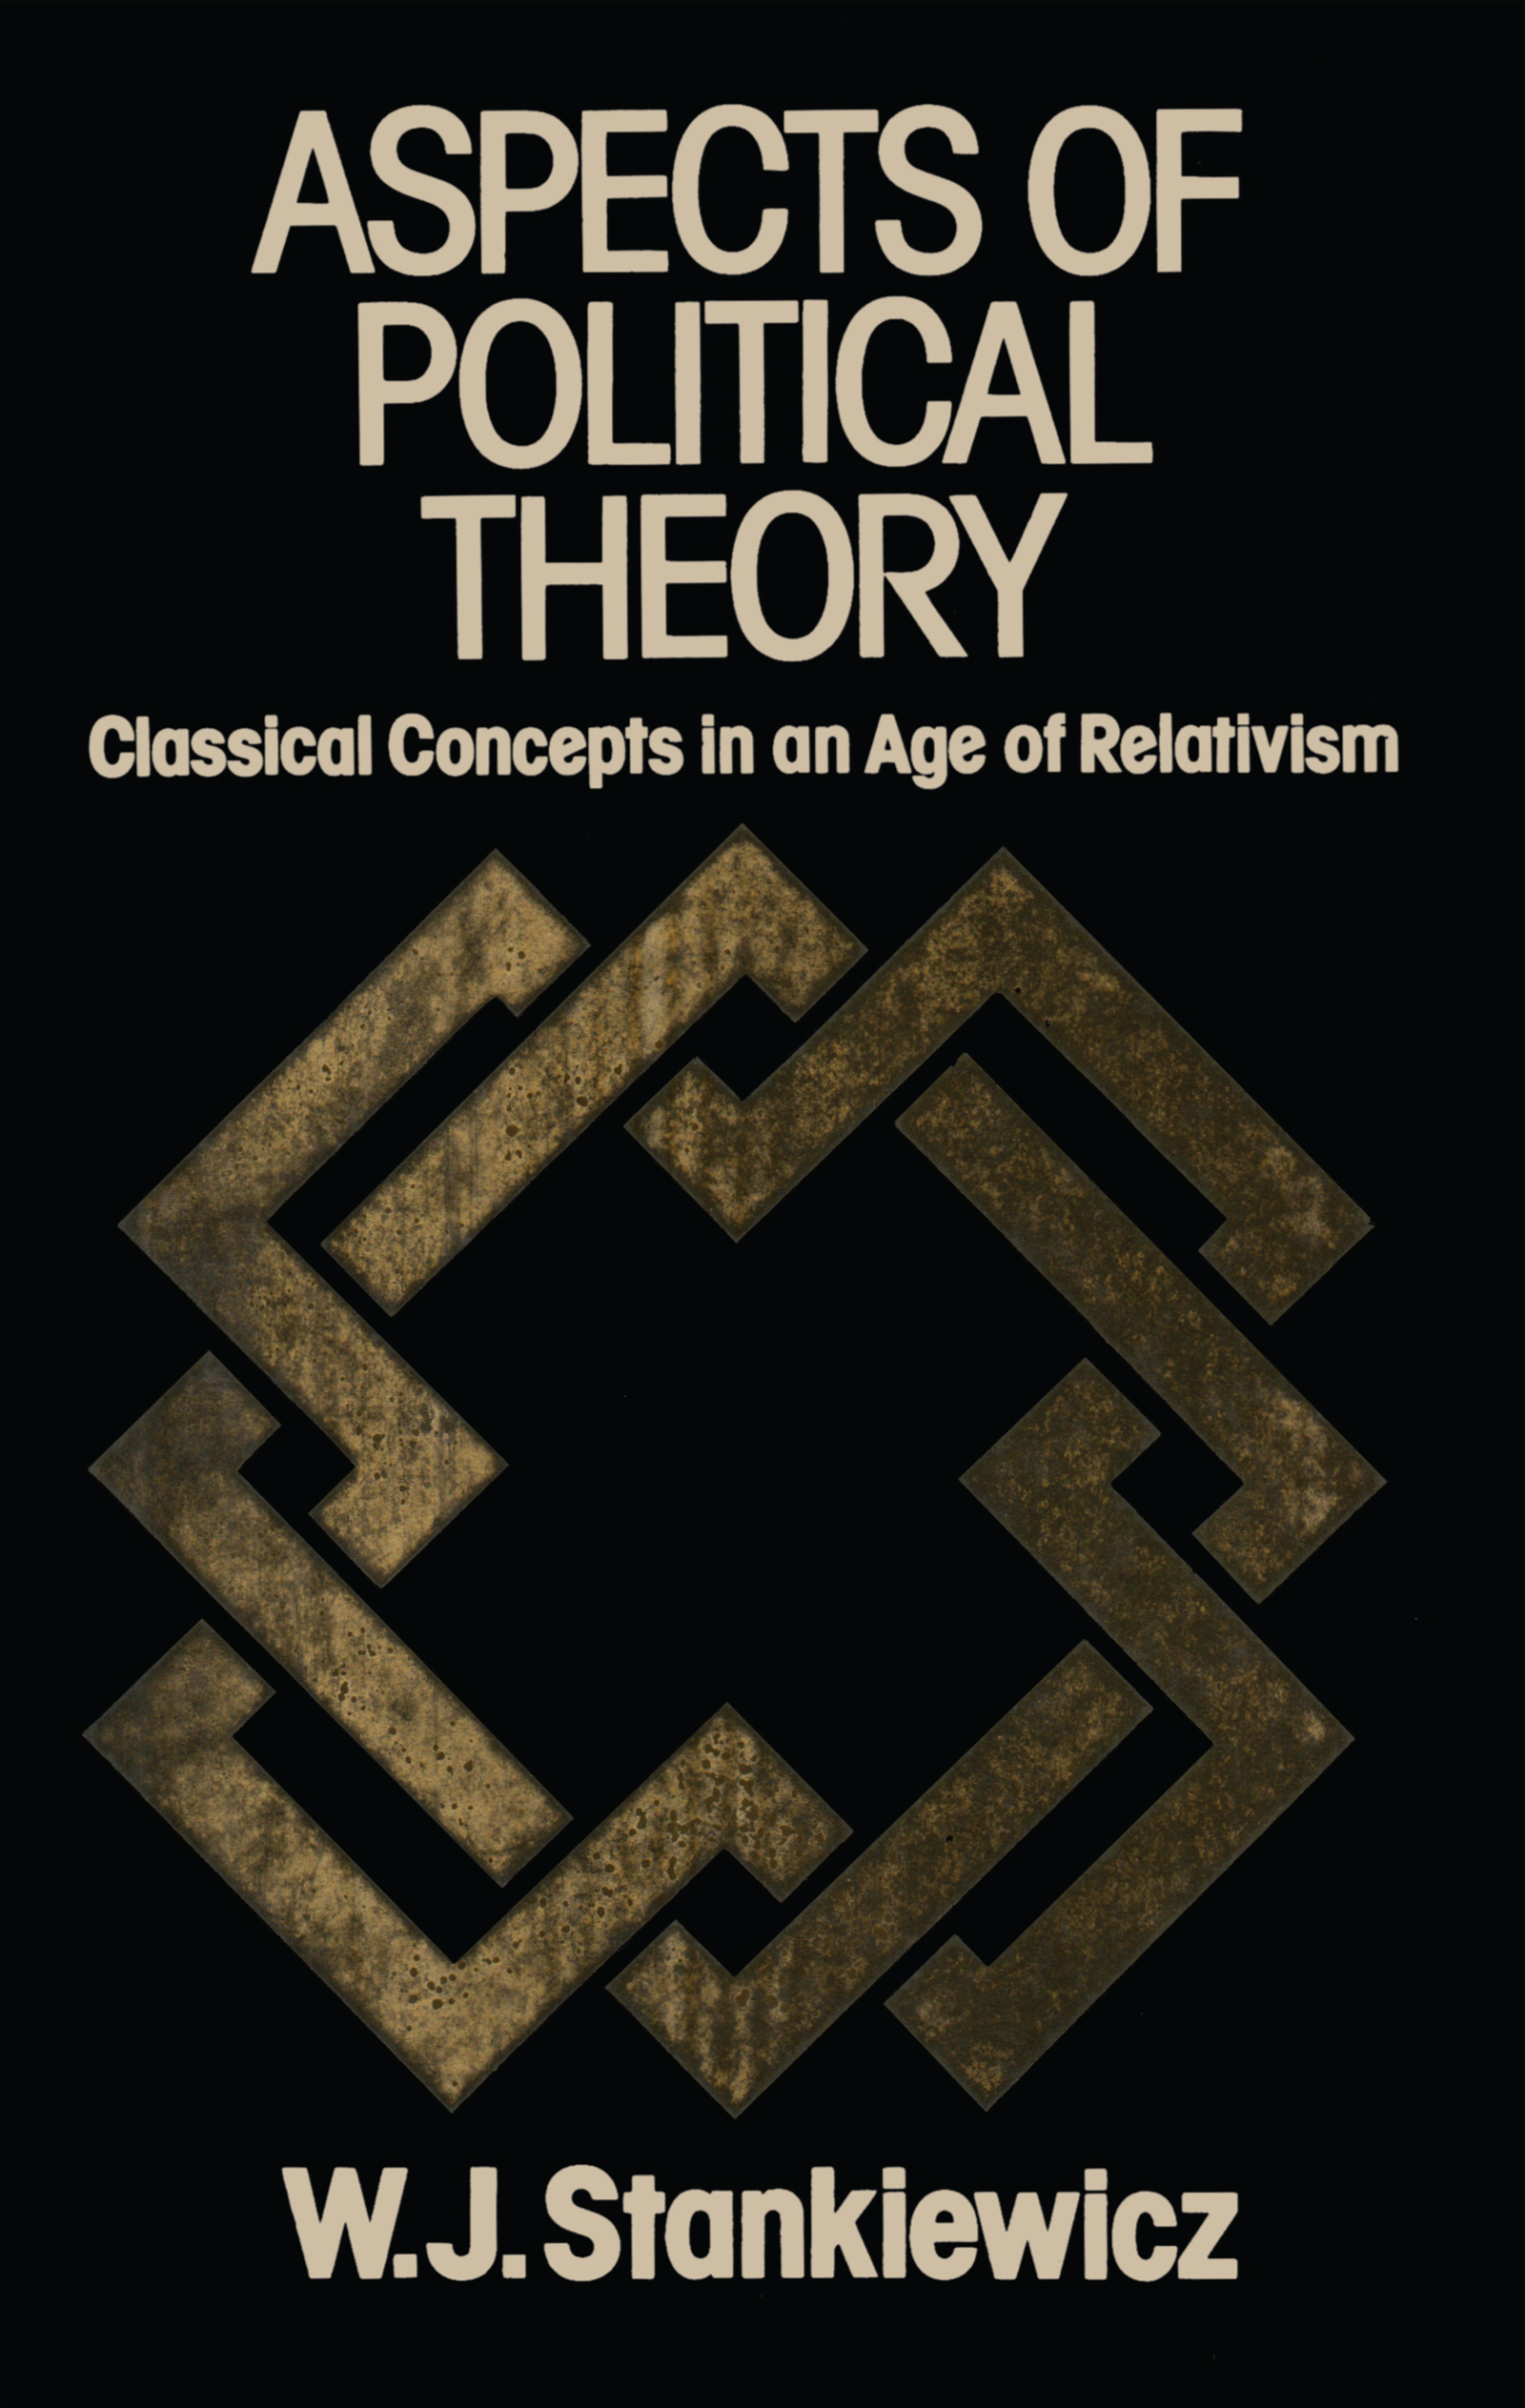 Aspects of Political Theory